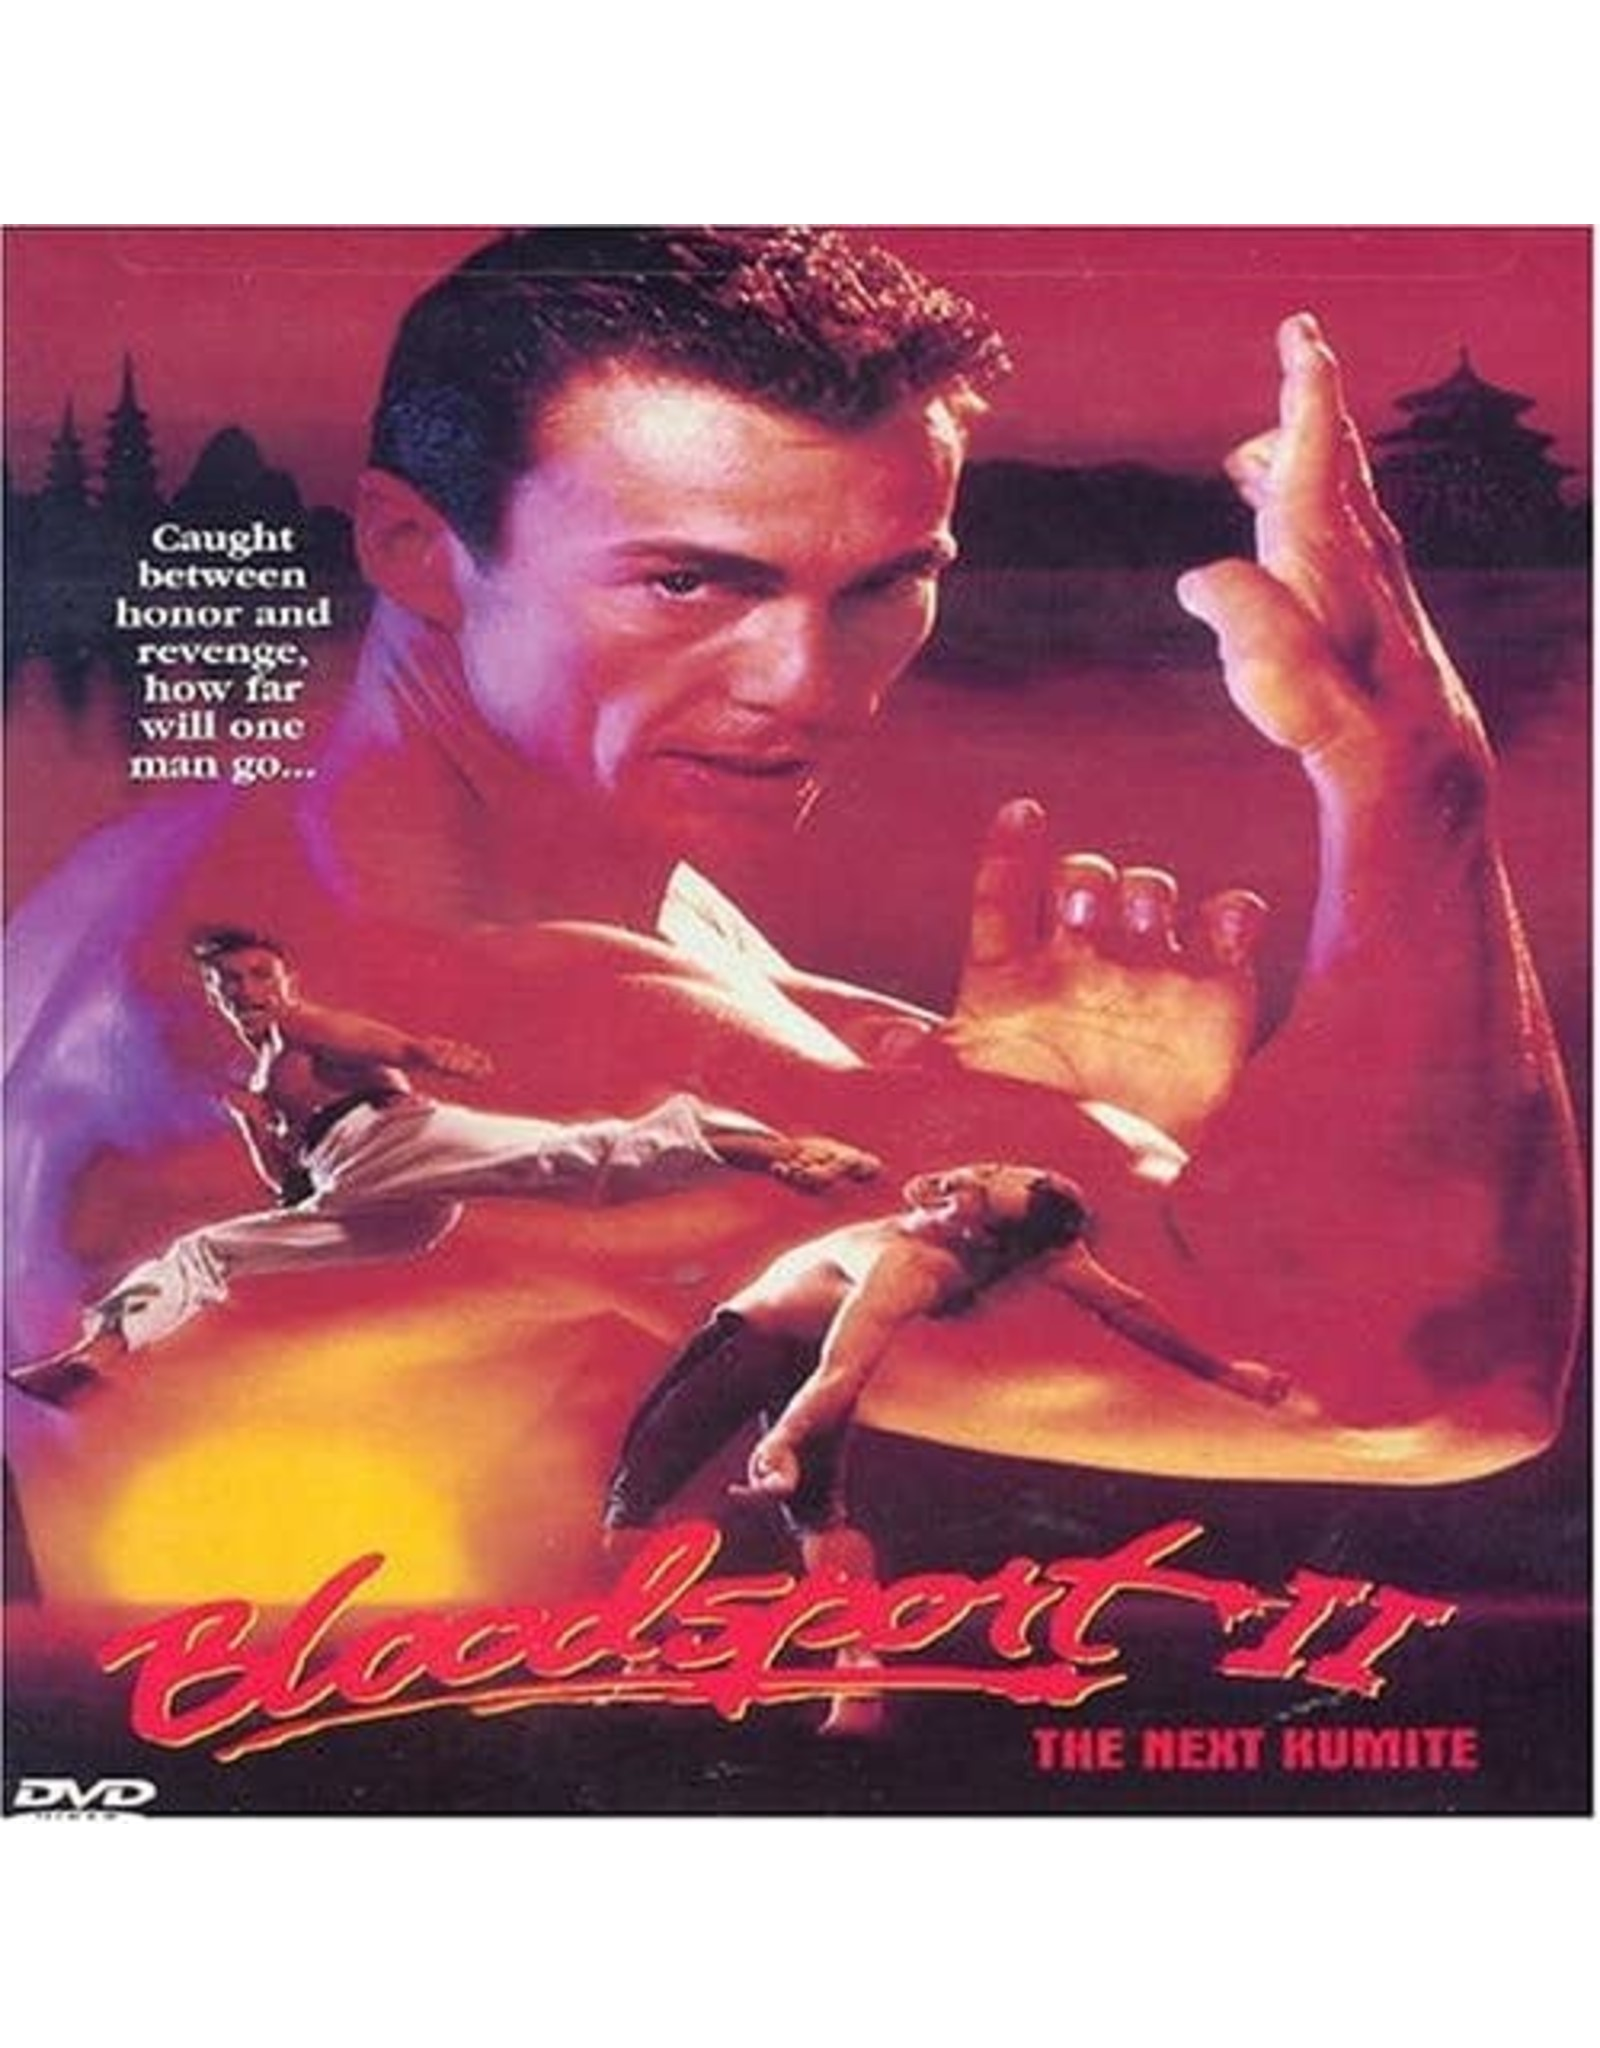 Cult and Cool Bloodsport II The Next Kumite